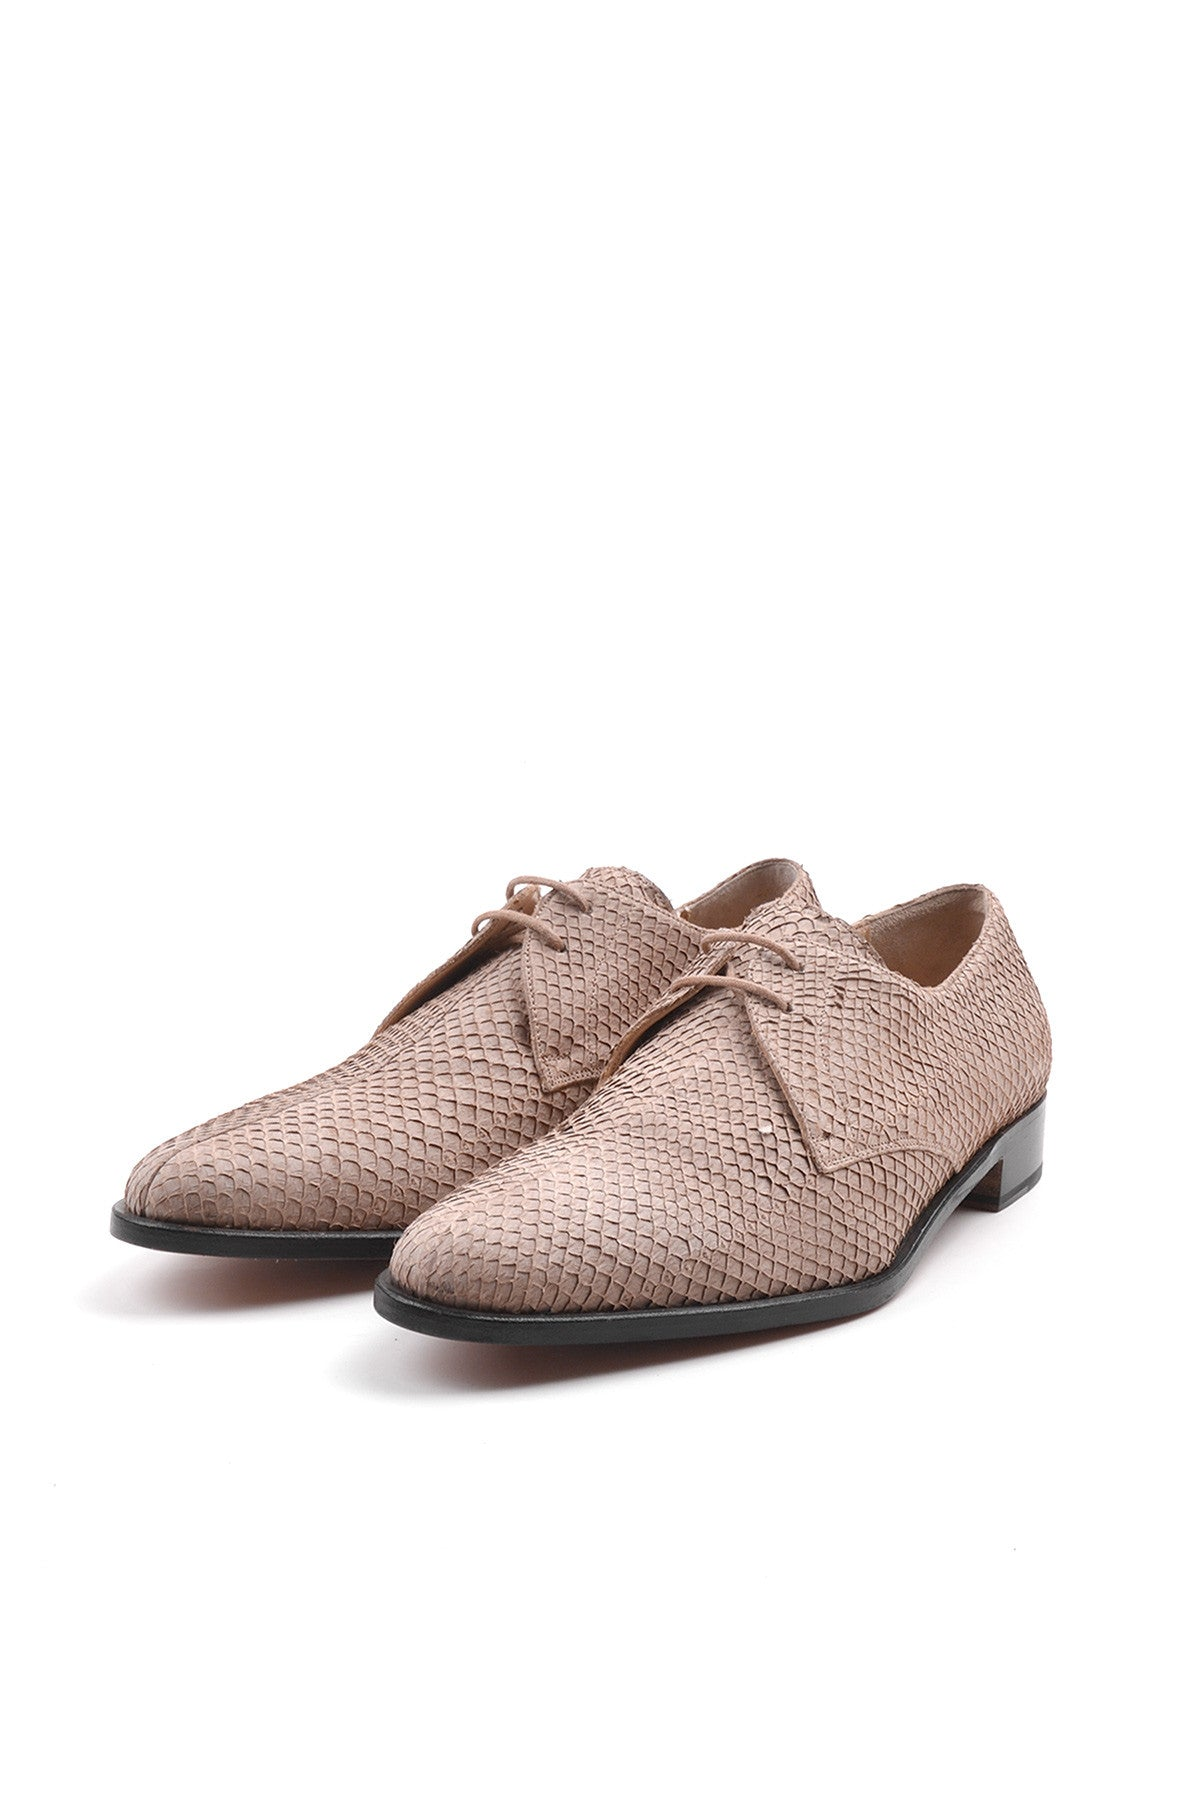 2002 S/S DERBY SHOES IN PERCH LEATHER